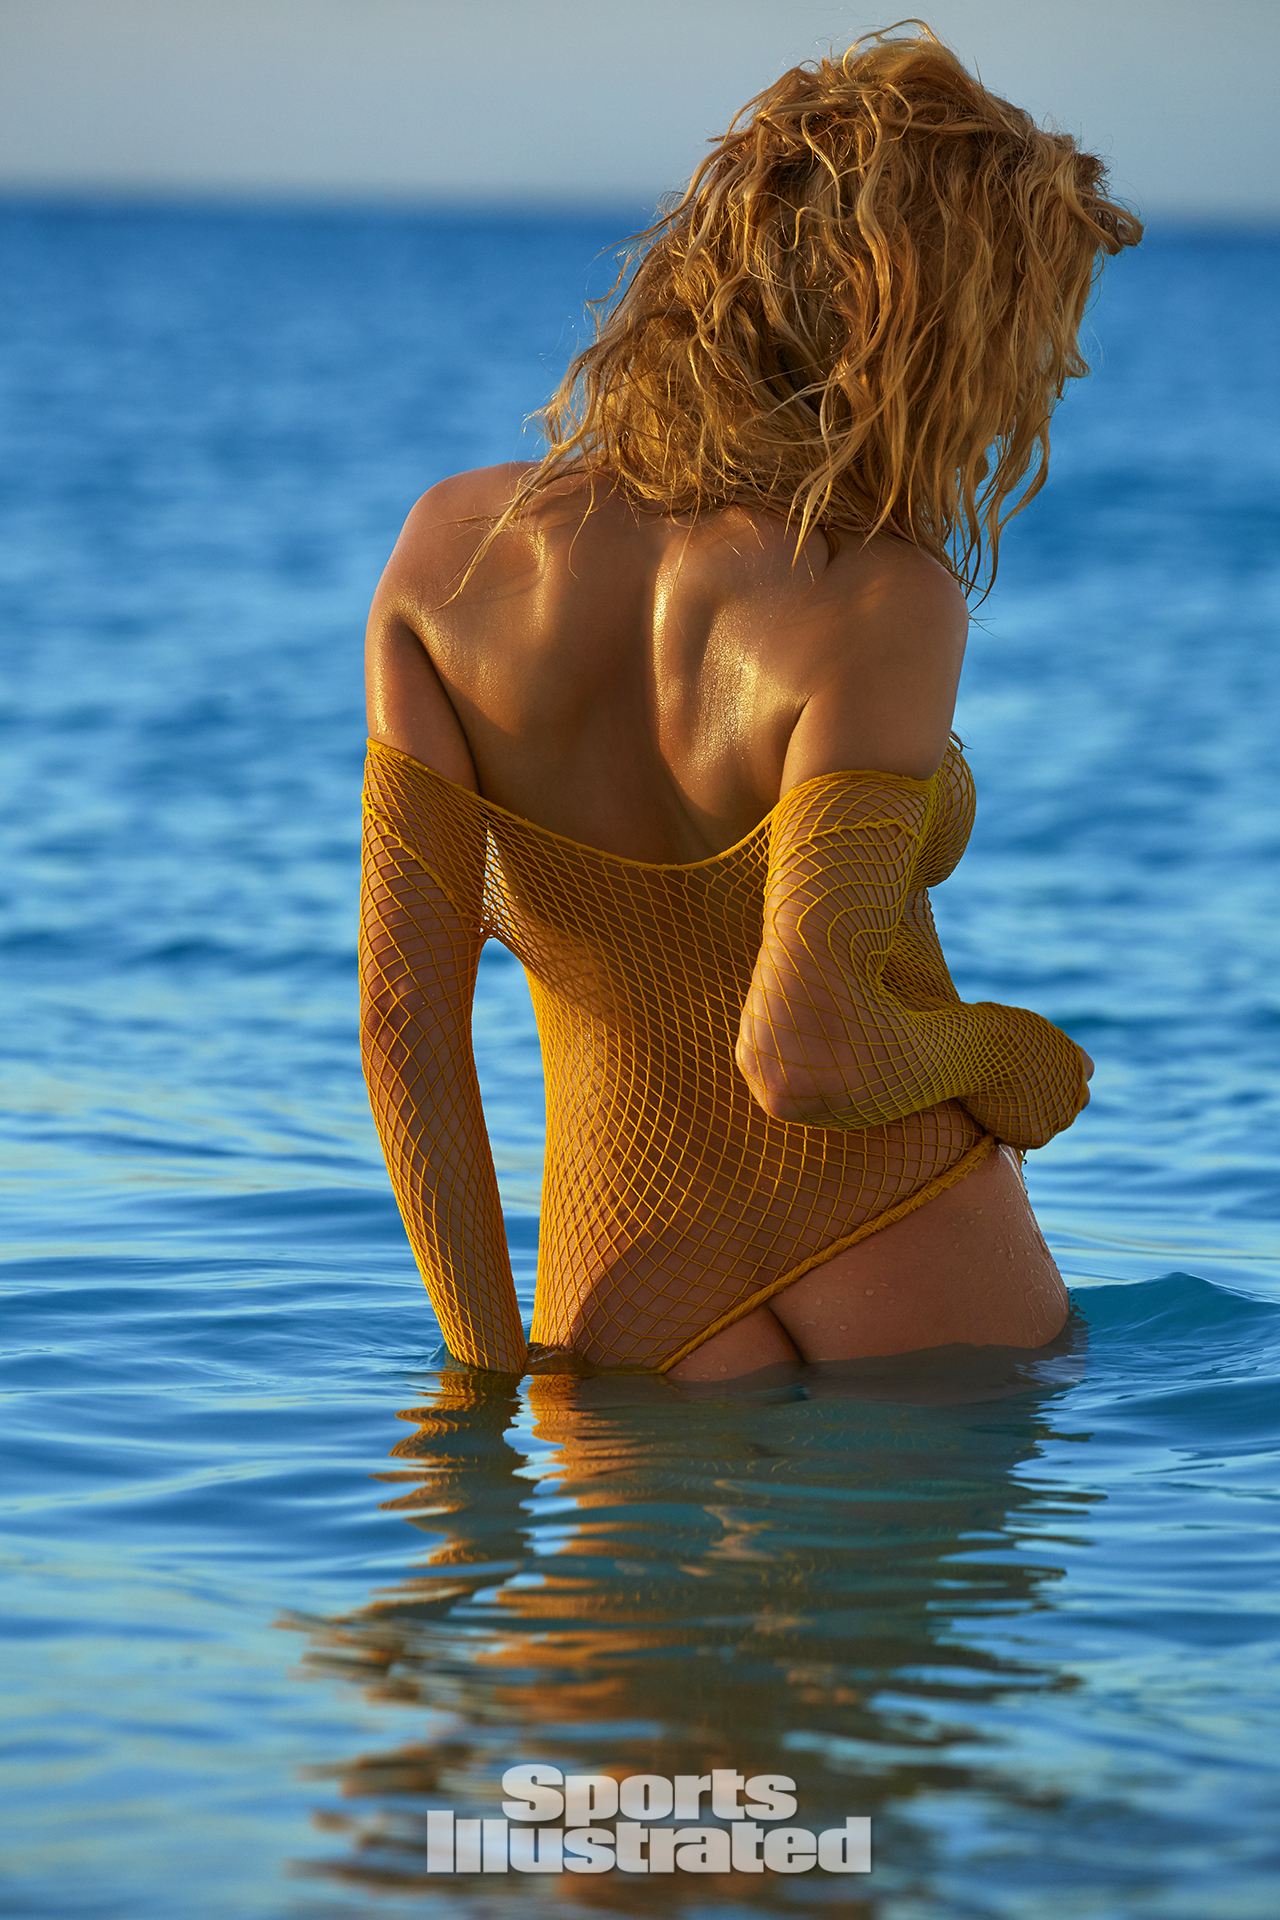 Hailey Clauson was photographed by James Macari in Turks & Caicos. Top by We Love Colors.